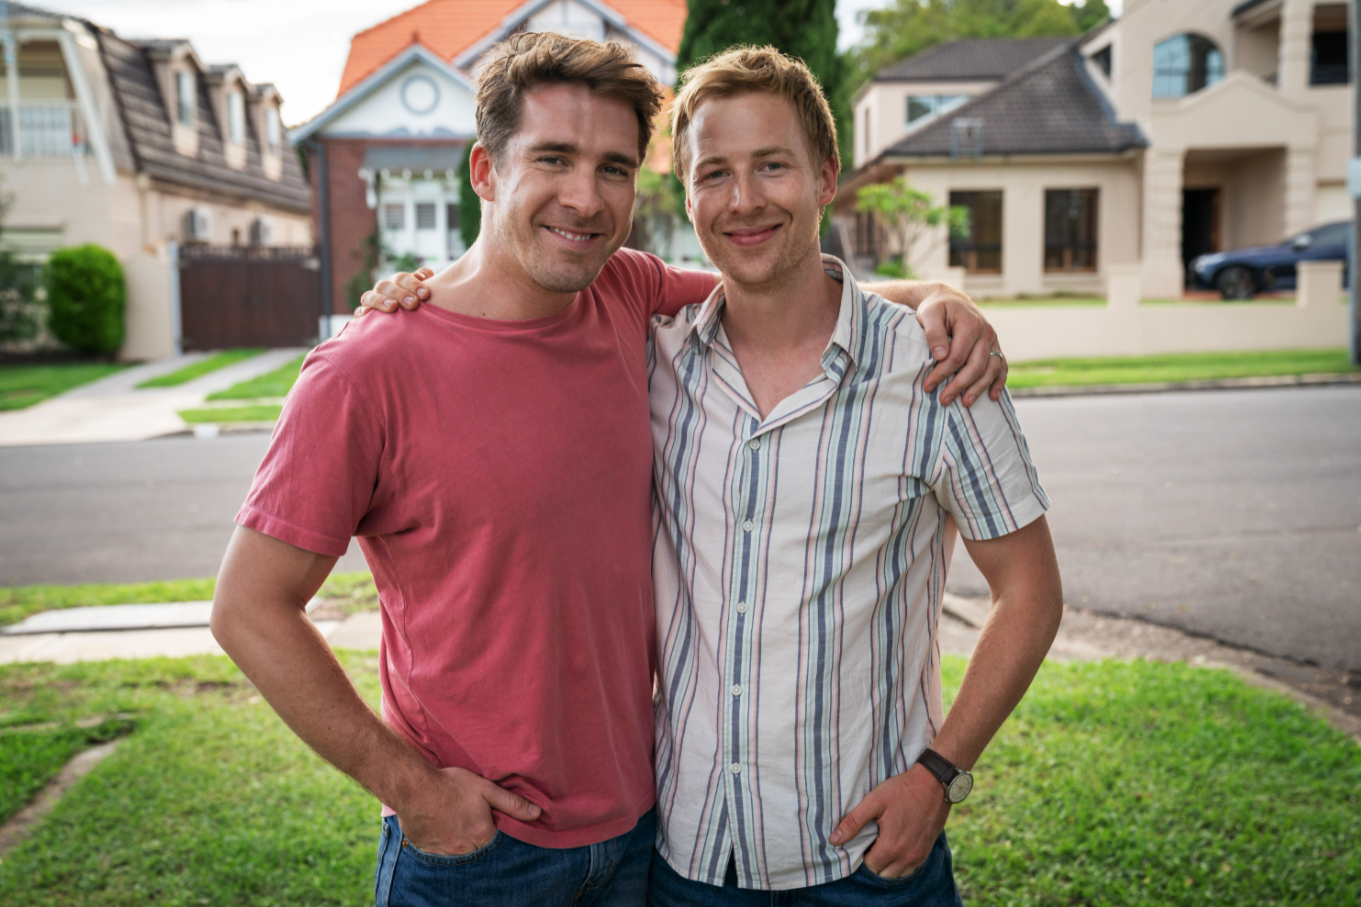 Hugh Sheridan and Angus McLaren with their arms wrapped around each other while posing for a photo